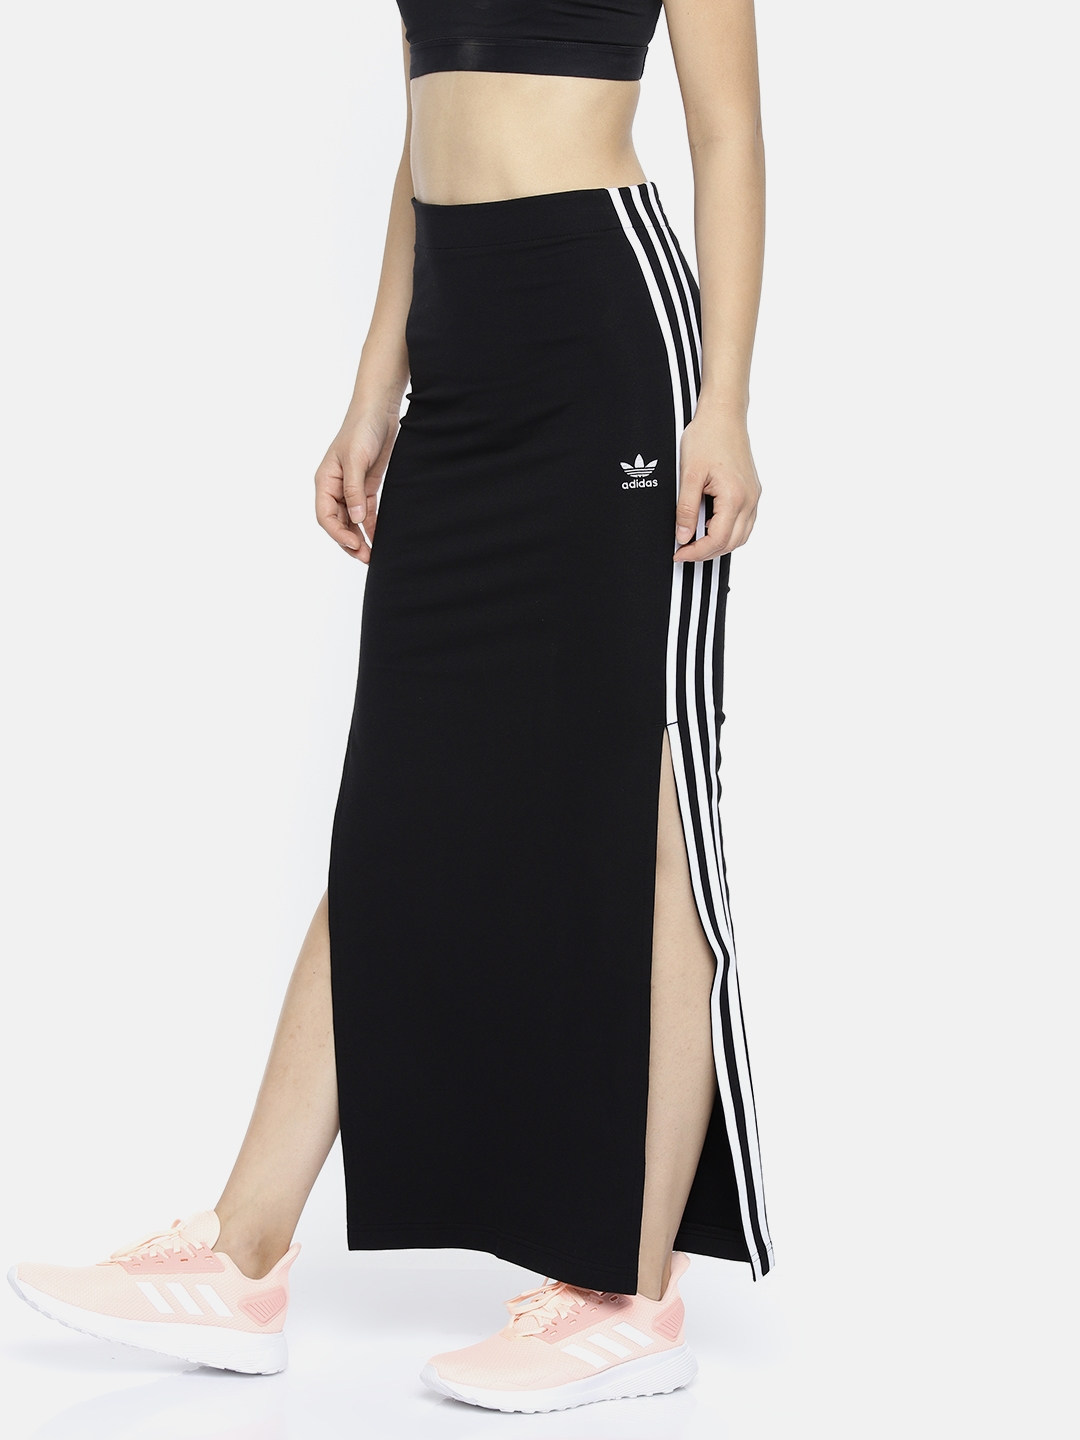 4bacf6e19 Buy ADIDAS Originals Women Black Solid Maxi Skirt - Skirts for Women ...